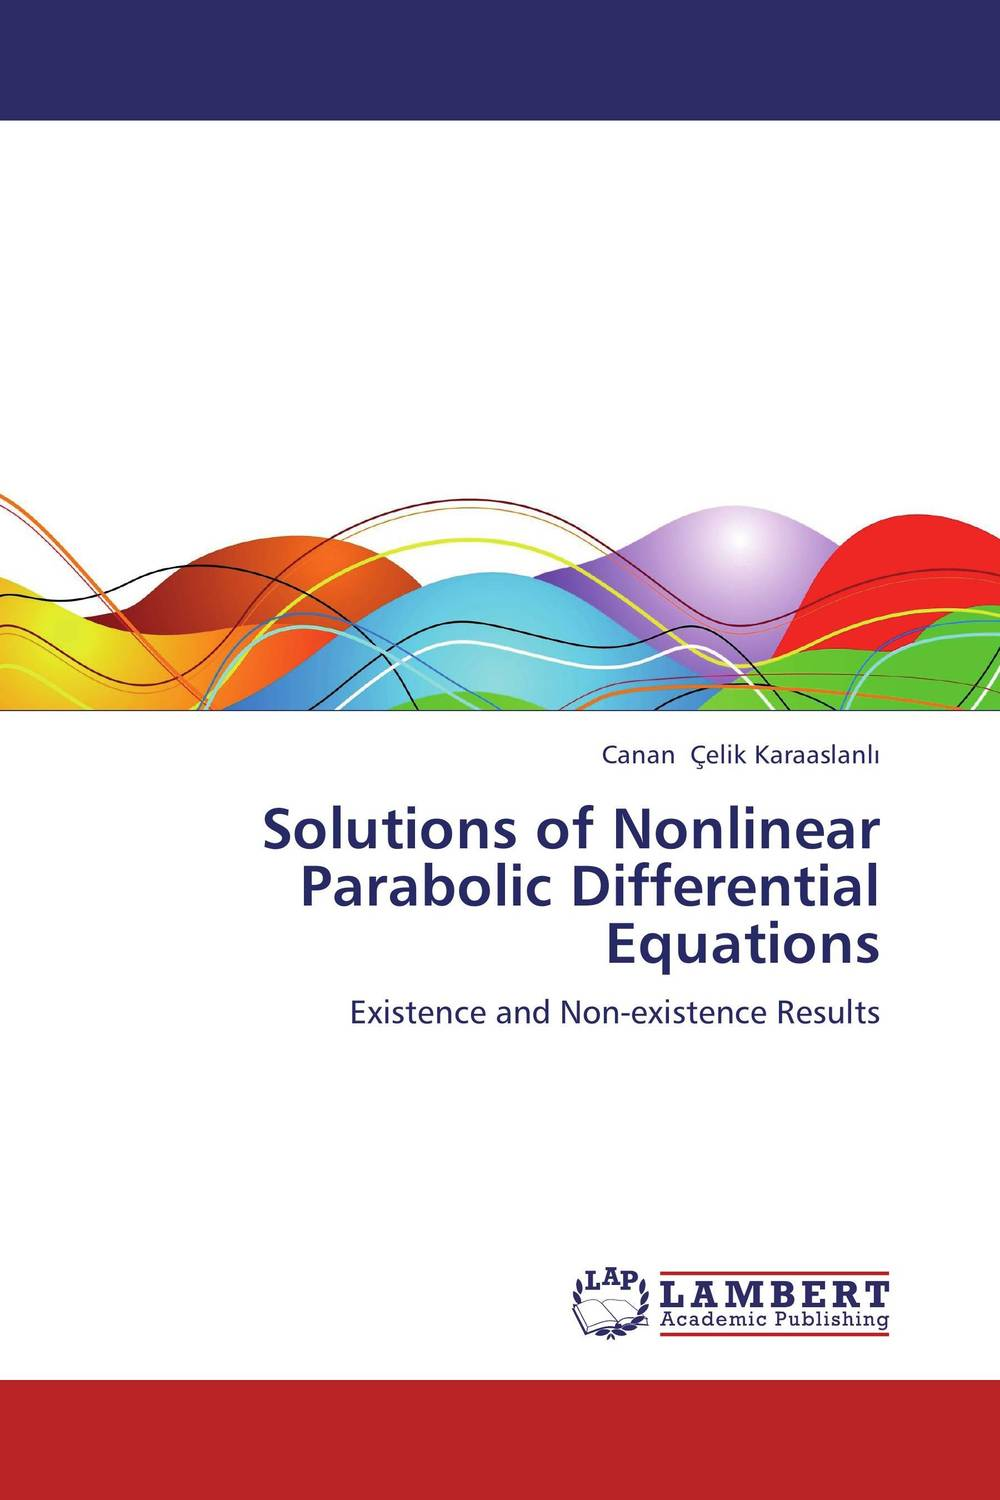 Solutions of Nonlinear Parabolic Differential Equations collocation methods for volterra integral and related functional differential equations